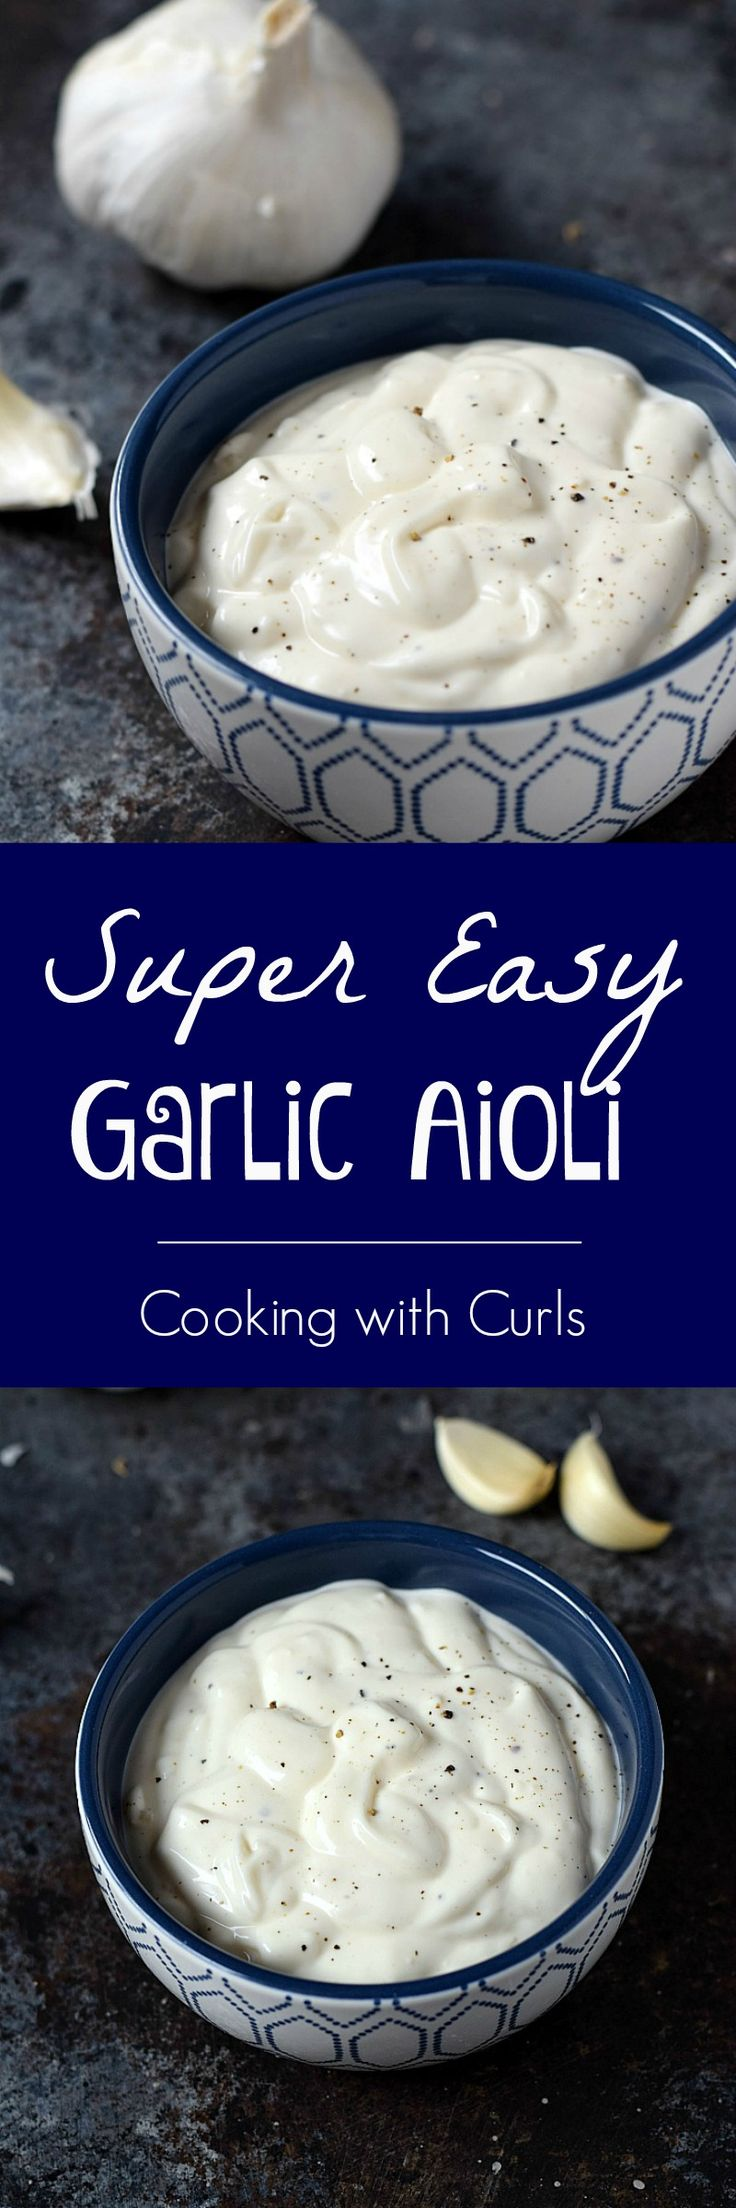 Super Easy Garlic Aioli is ready in minutes and crazy delicious | cookingwithcurls.com: